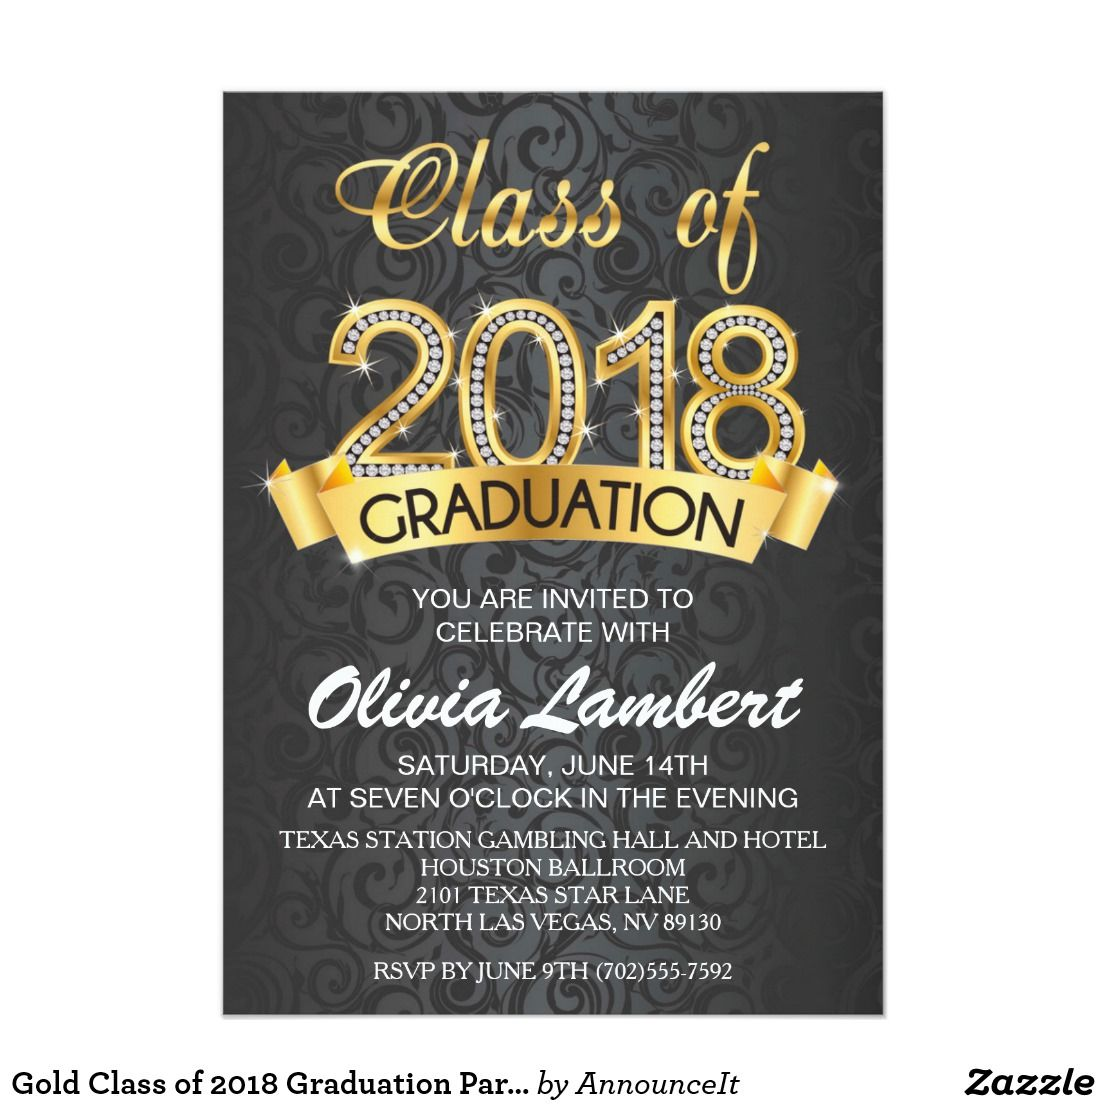 Gold Class of 2018 Graduation Party Invitations | Pinterest | Party ...